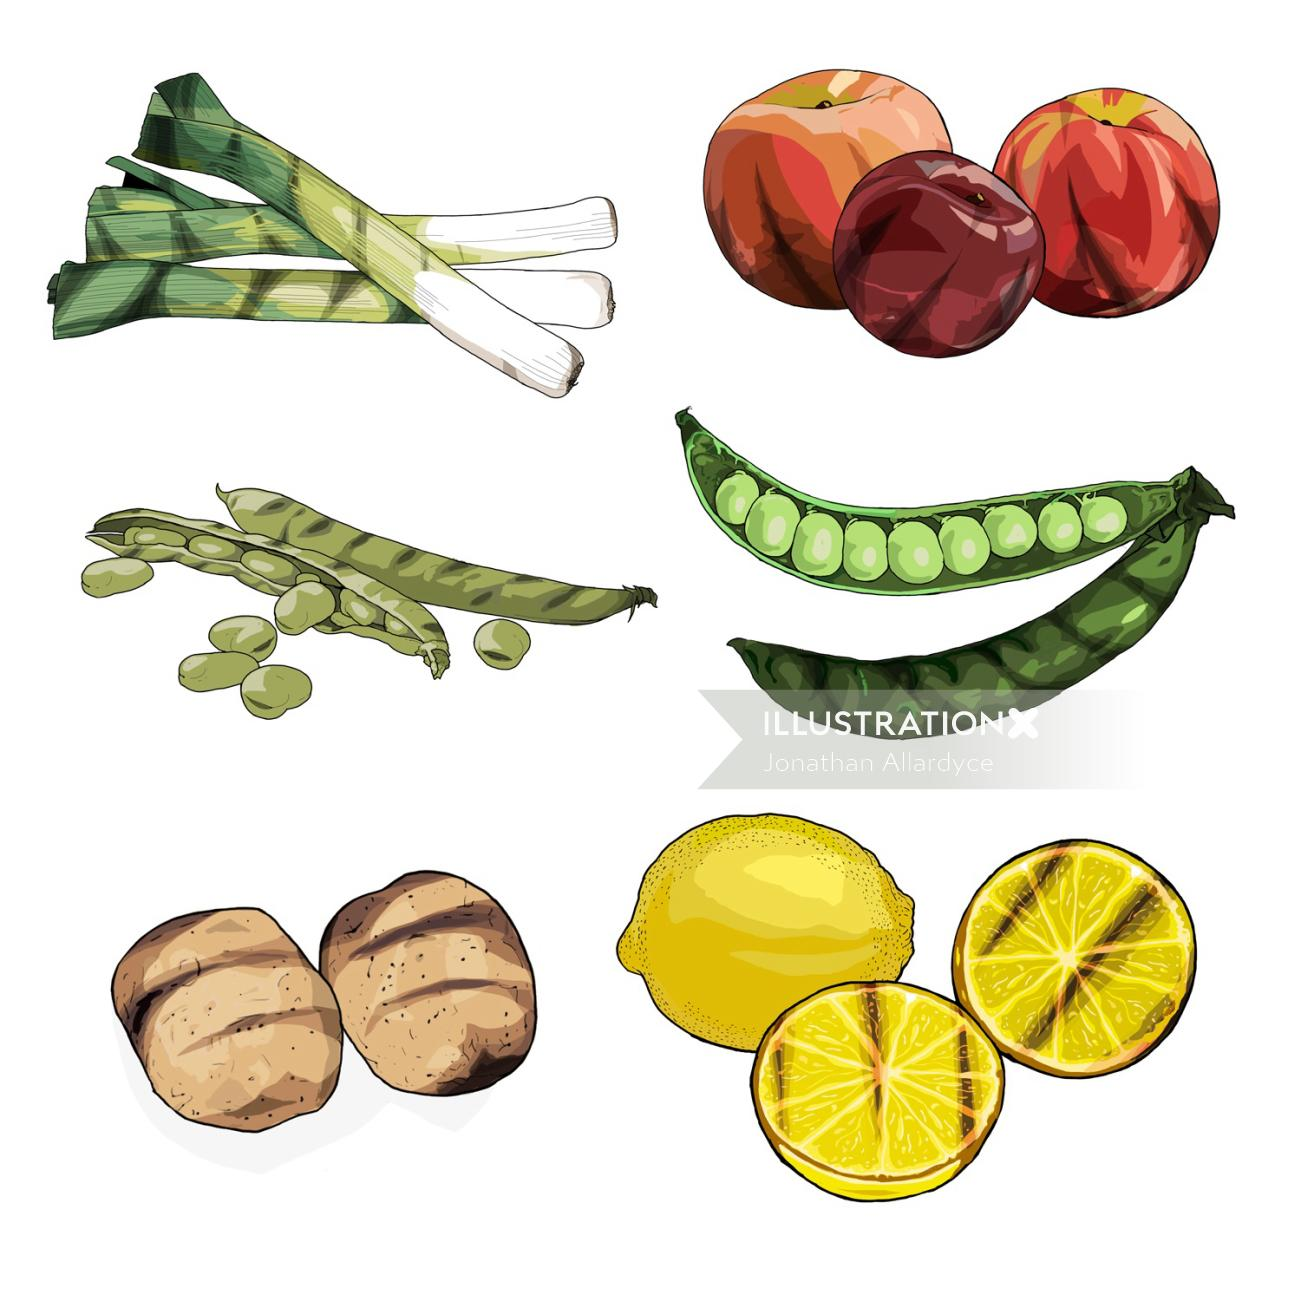 Fruit and vegetables illustration by Jonathan Allardyce